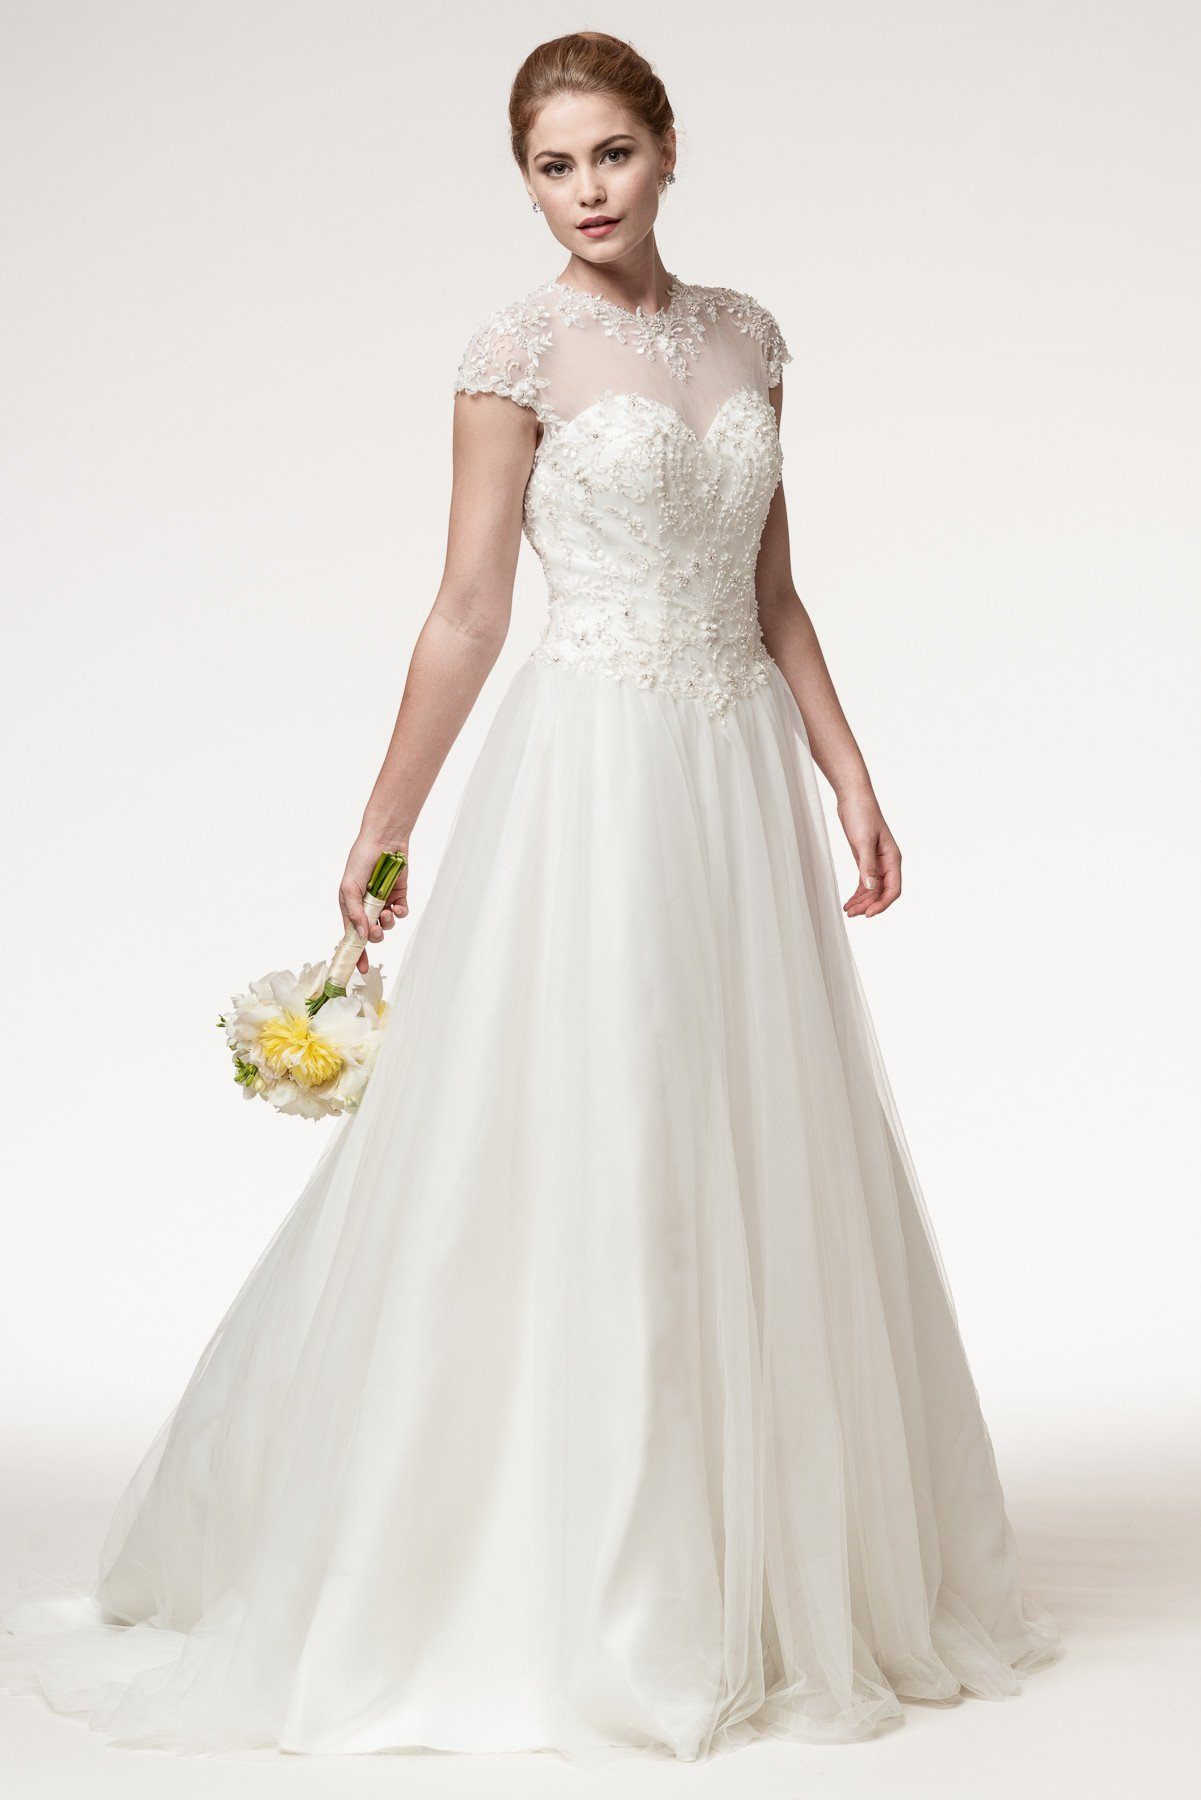 Cap sleeve lace ball gown wedding dress Bc# wjw1787 – Simply Fab Dress